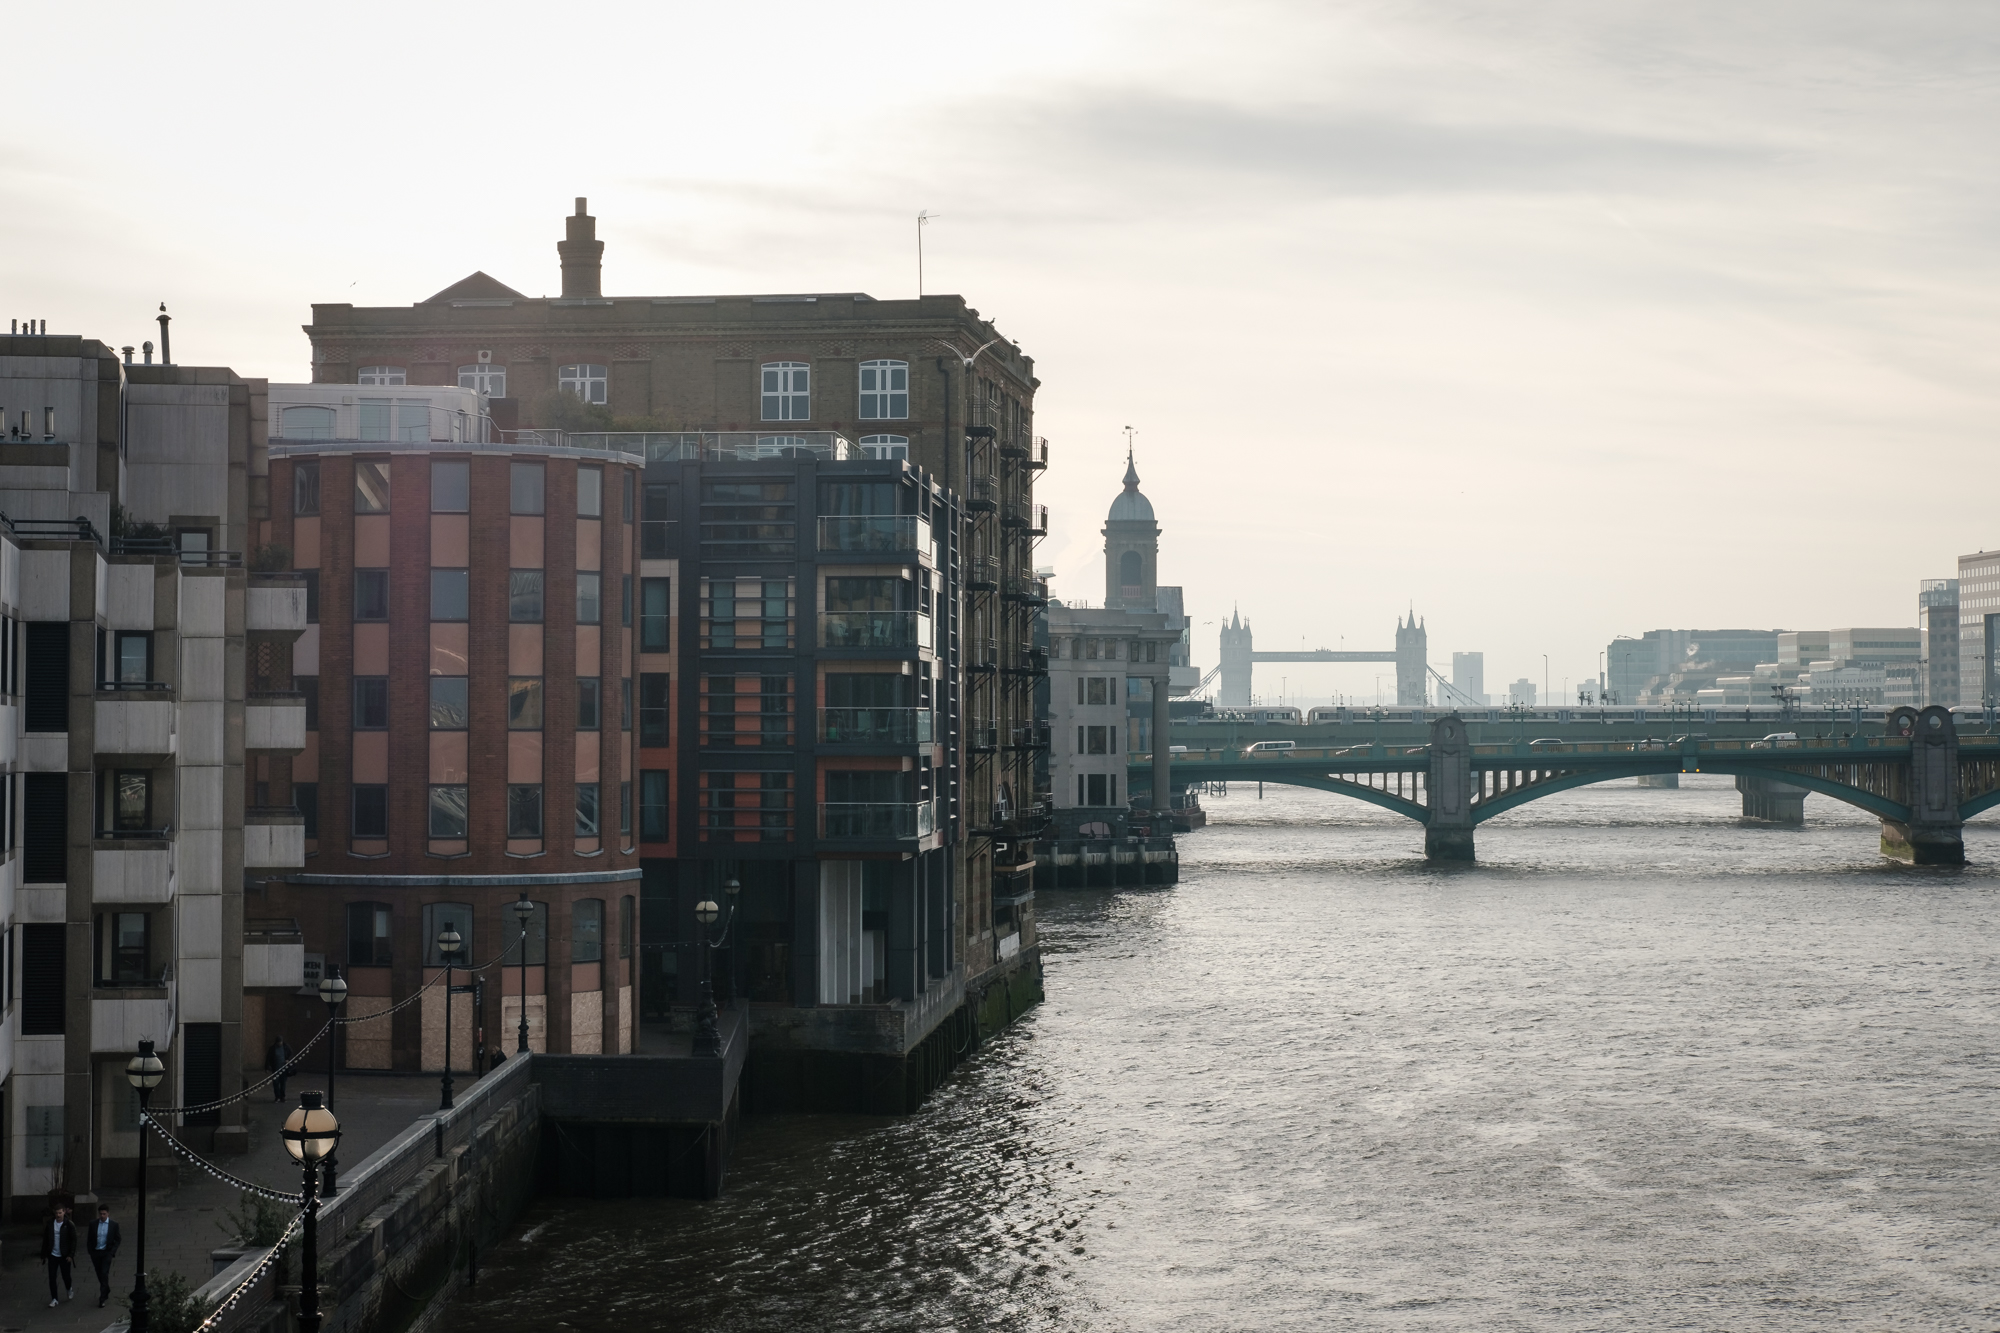 London Chrome photo of the Thames North Bank by Trevor Sherwin